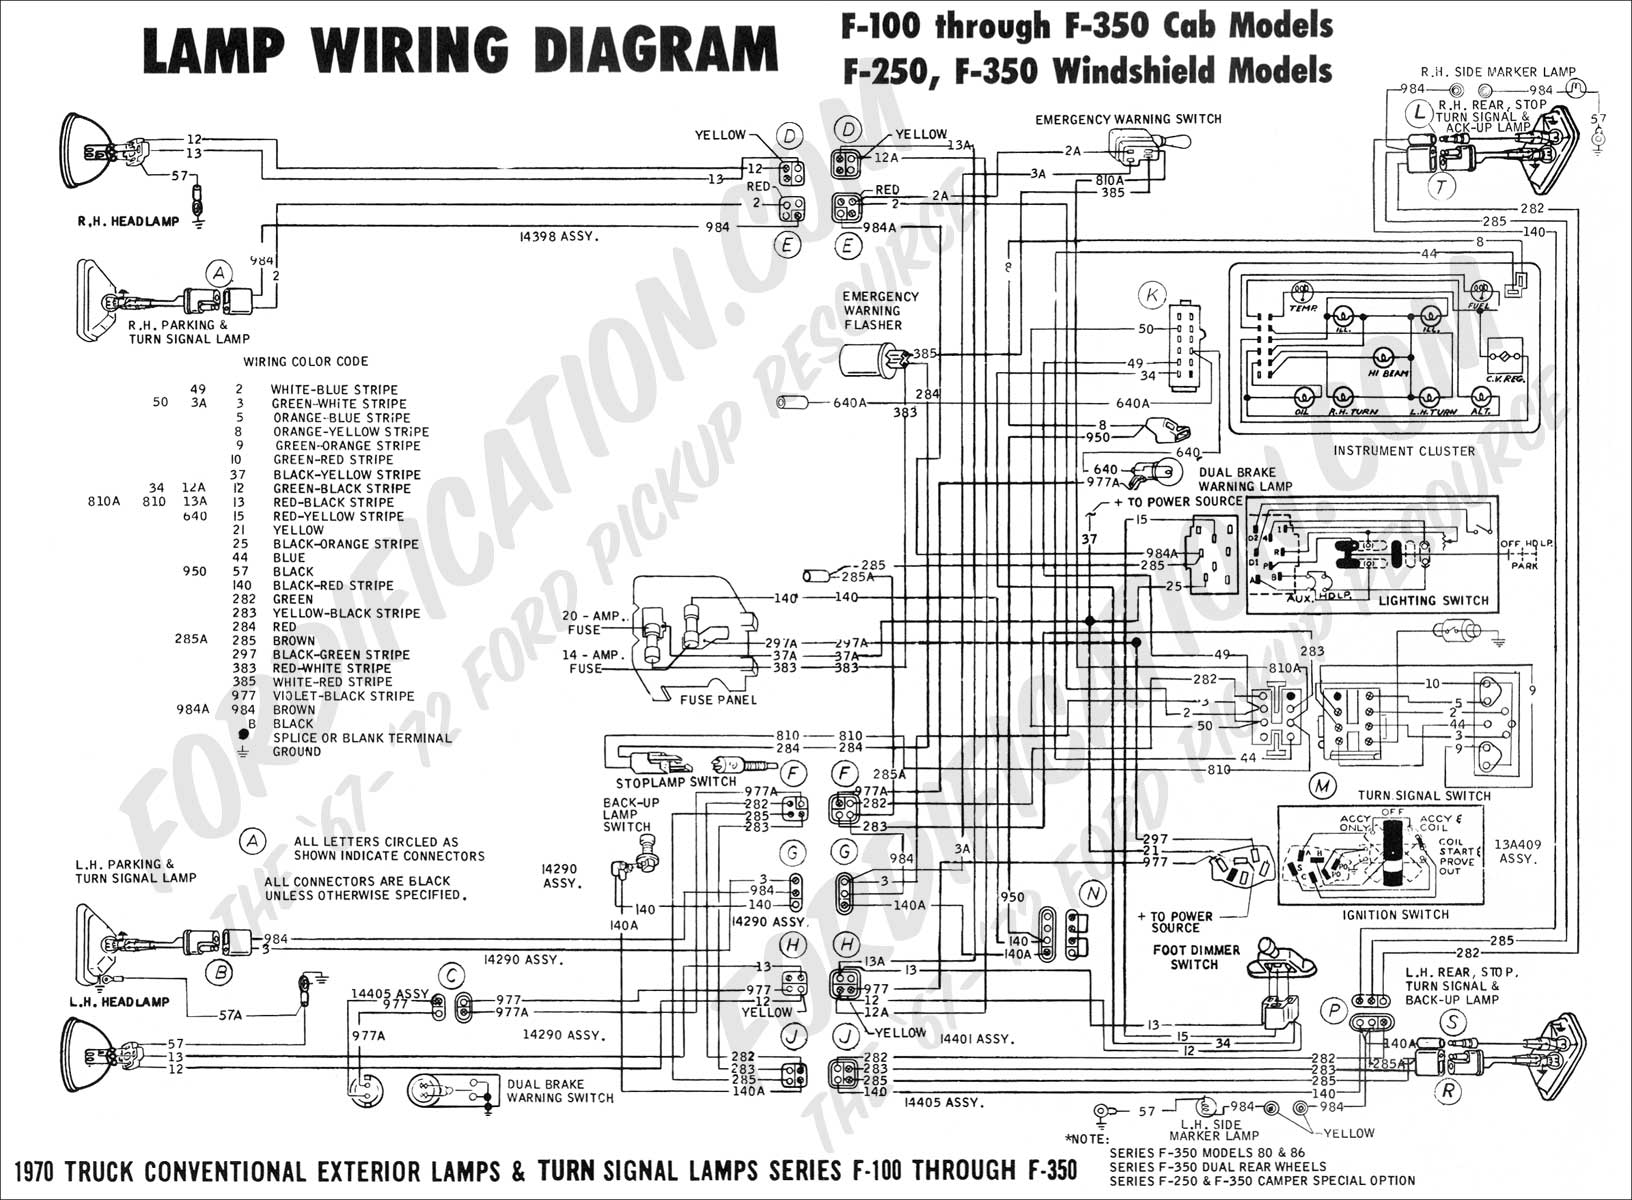 Sportster 1977 Xlt Wiring Diagram Guide And Troubleshooting Of 1980 Harley Davidson Xlh 1000 1978 Ford Truck Fuse Box Todays Rh 10 6 9 1813weddingbarn Com 1993 Simple